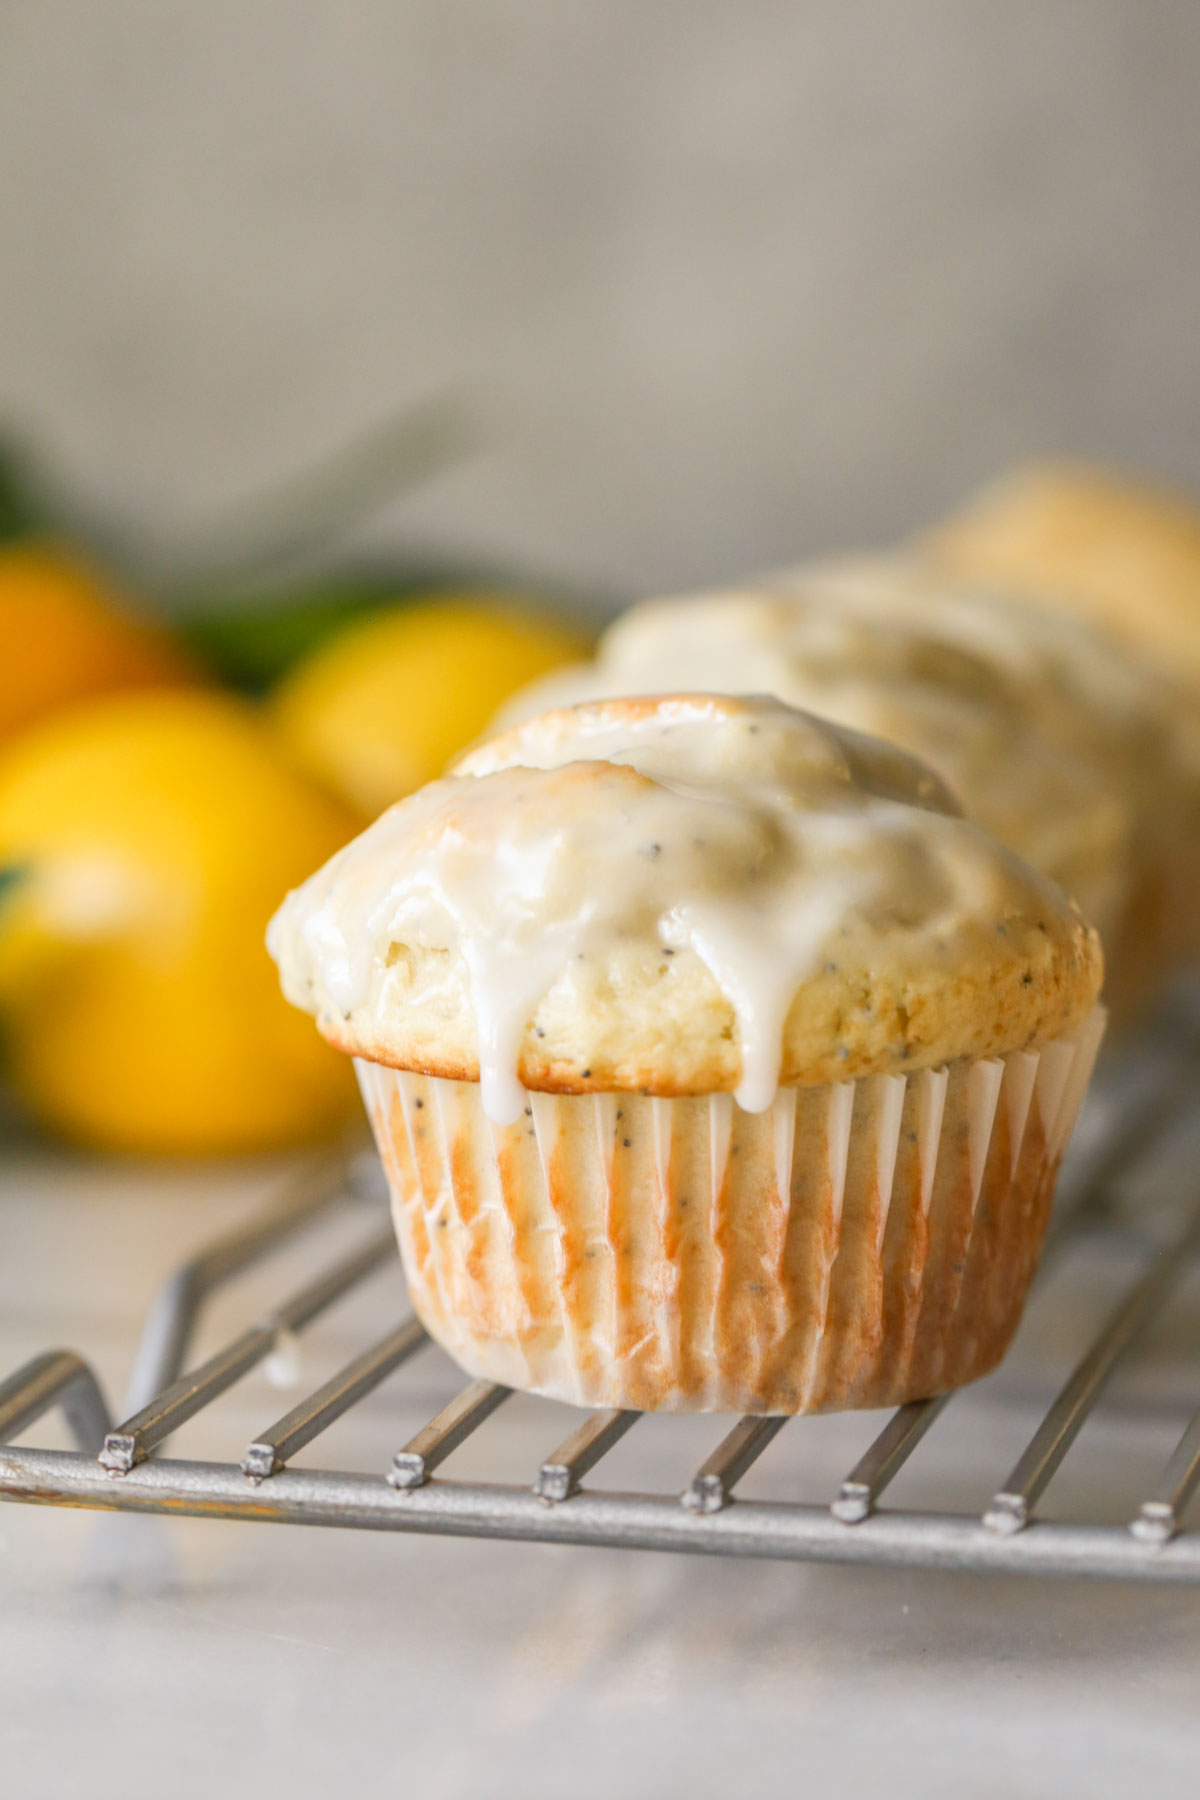 Close up shot of a Glazed Lemon Poppy Seed Muffin on a cooling rack.